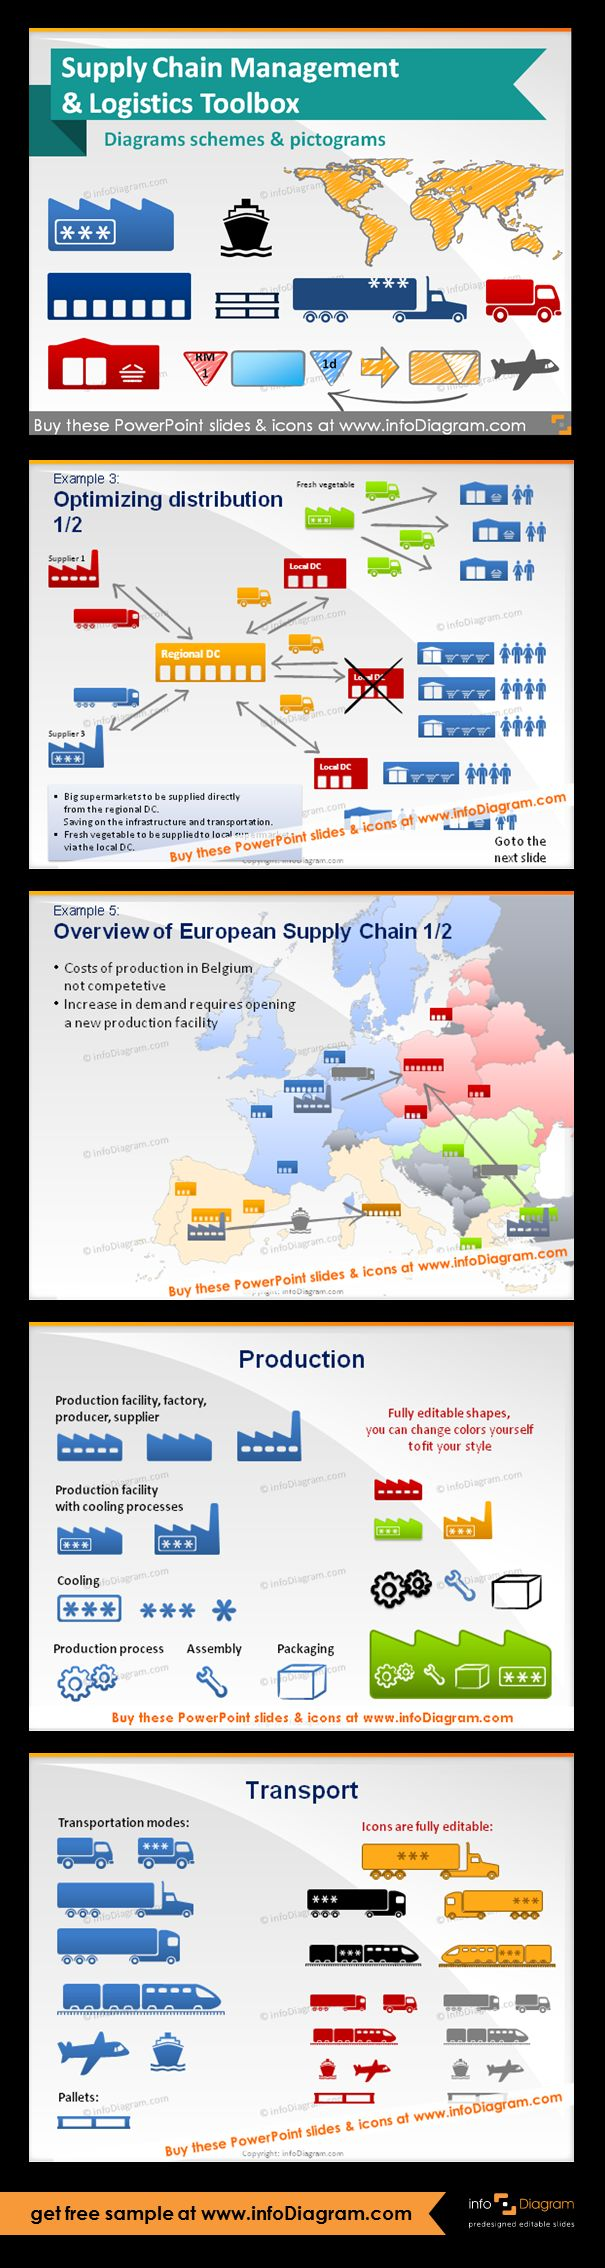 Supply Chain and Logistics schema diagrams & pictogram icons - editable graphical elements for PowerPoint. Fully adaptable vector shapes (color, filling, size). Overview of a European Supply Chain. Optimizing distribution ( Big supermarkets to be supplied directly from the regional DC. Saving on the infrastructure and transportation. Fresh vegetable to be supplied to local supermarkets via the local DC.). Pictograms of production facility, factory, producer. Symbols of transport.